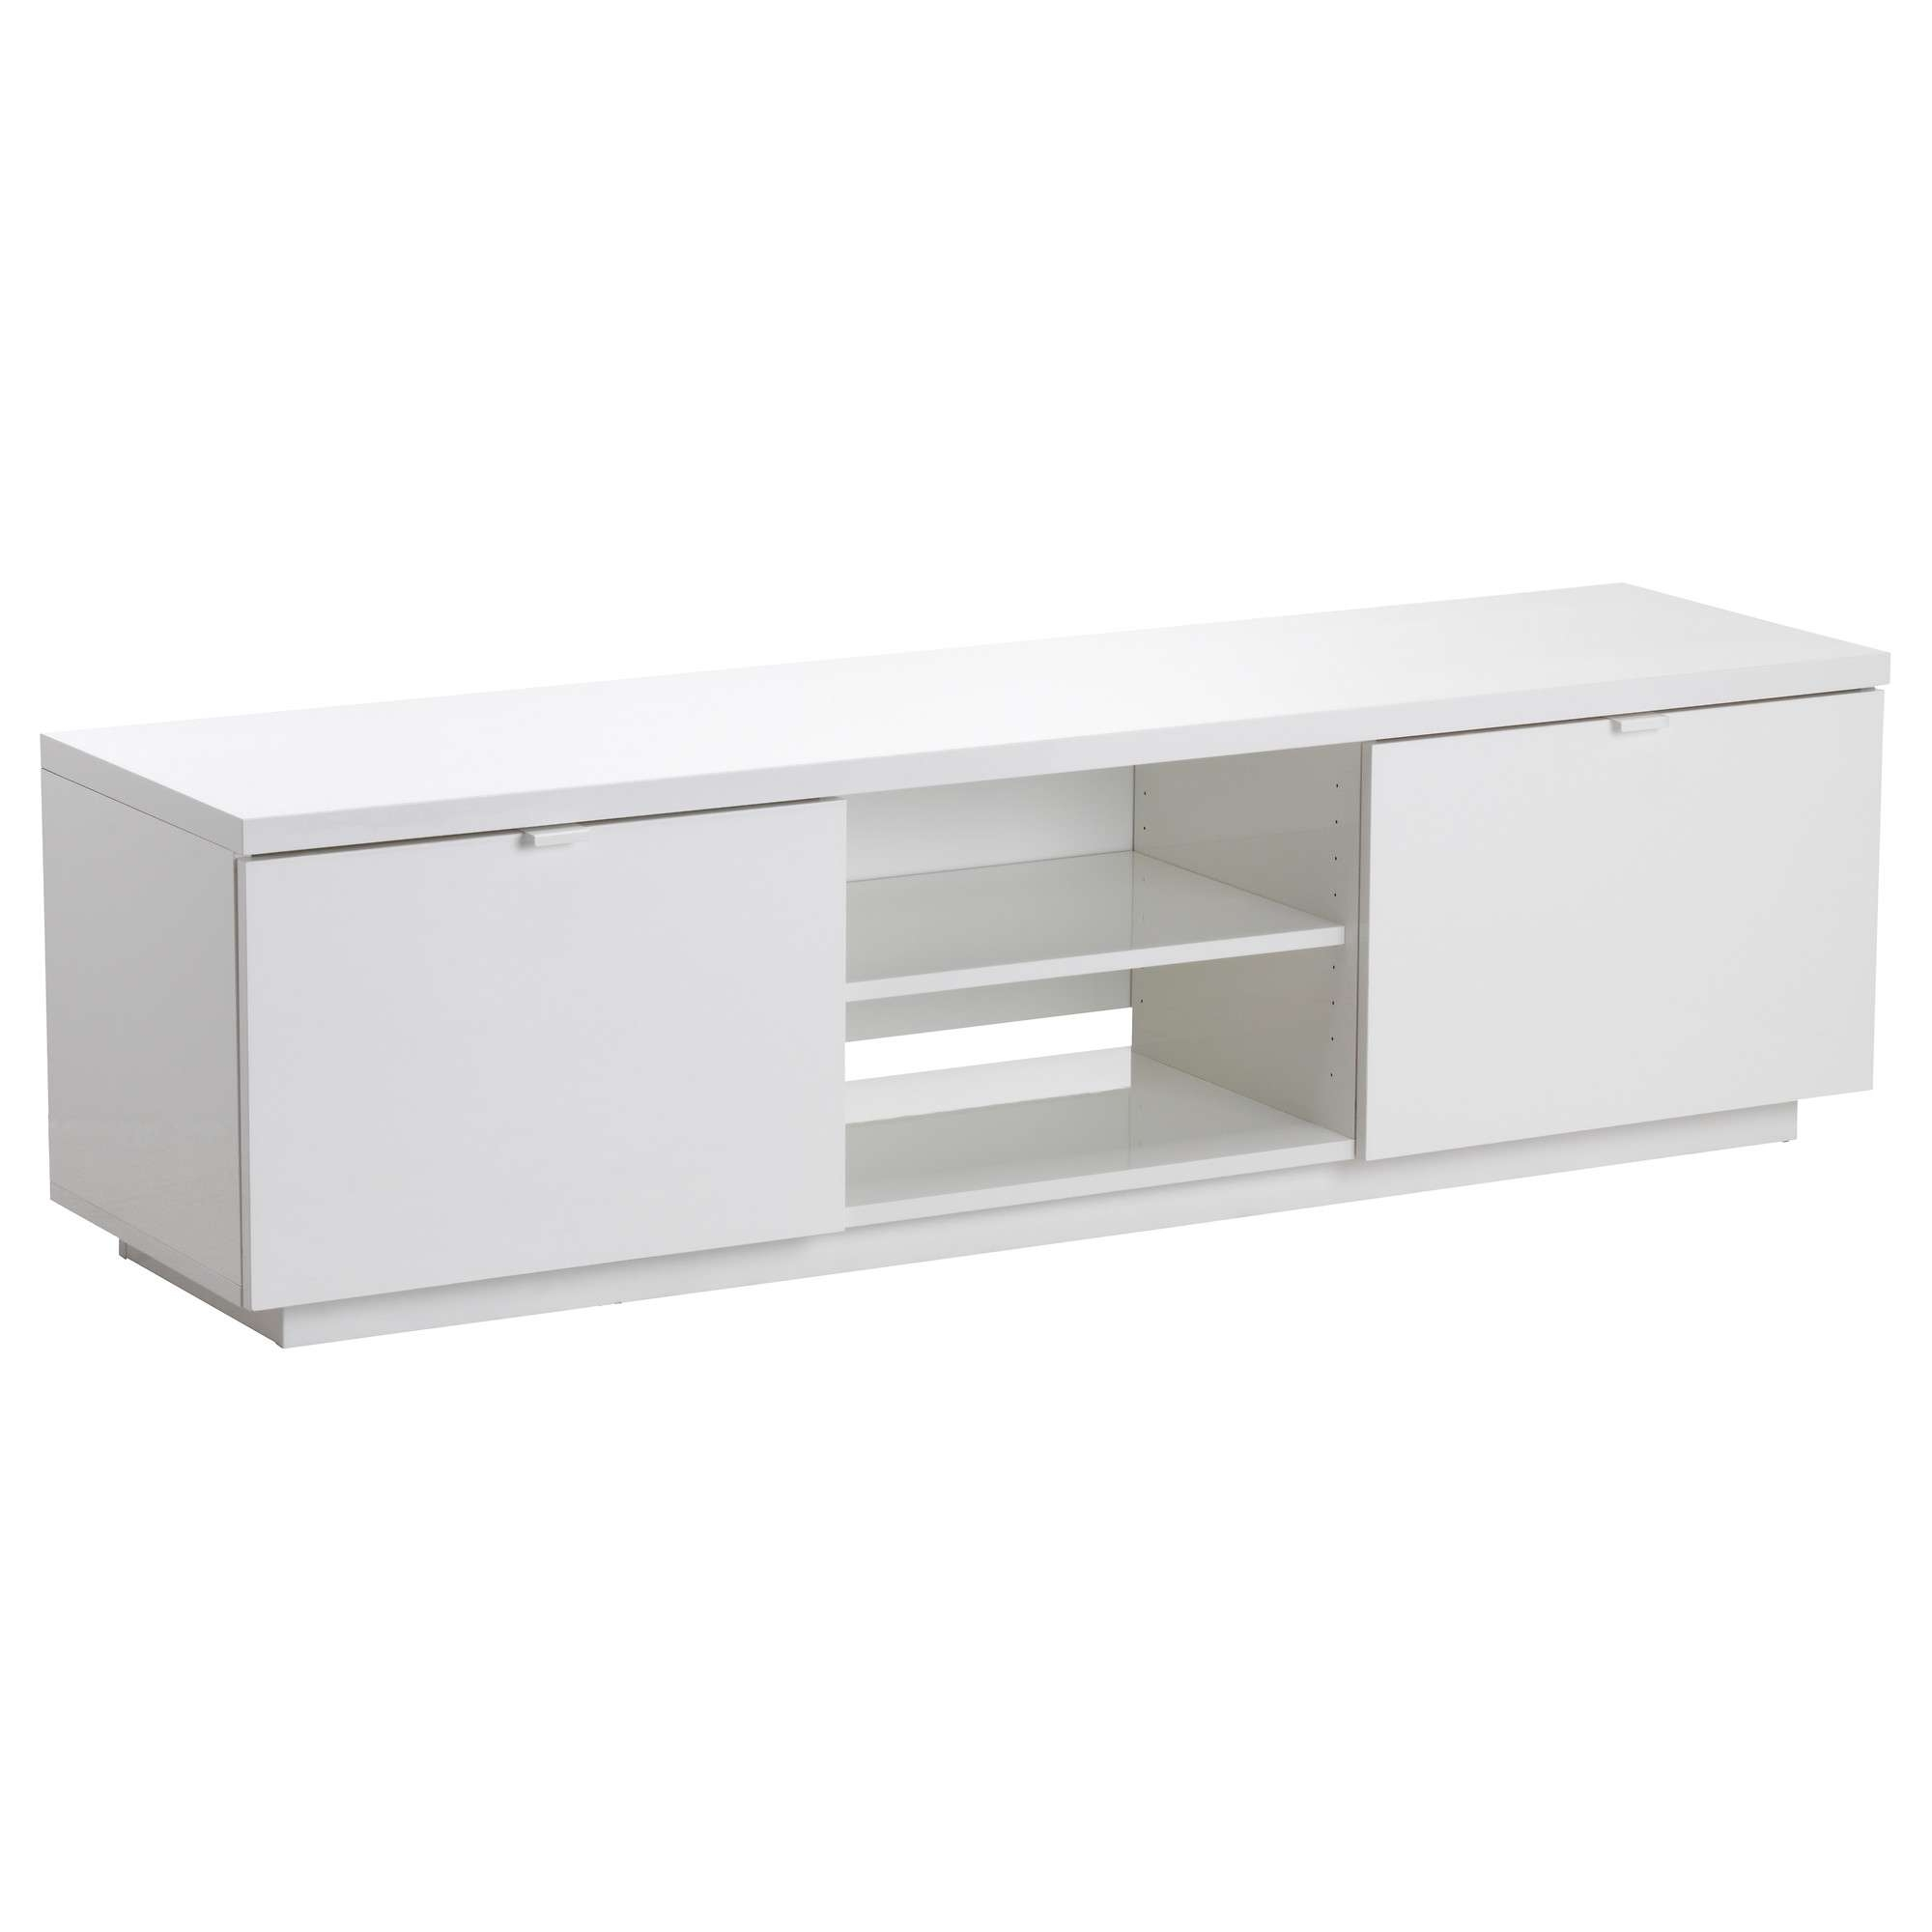 Byås Tv Unit – Ikea With Regard To White Gloss Tv Stands (View 12 of 15)